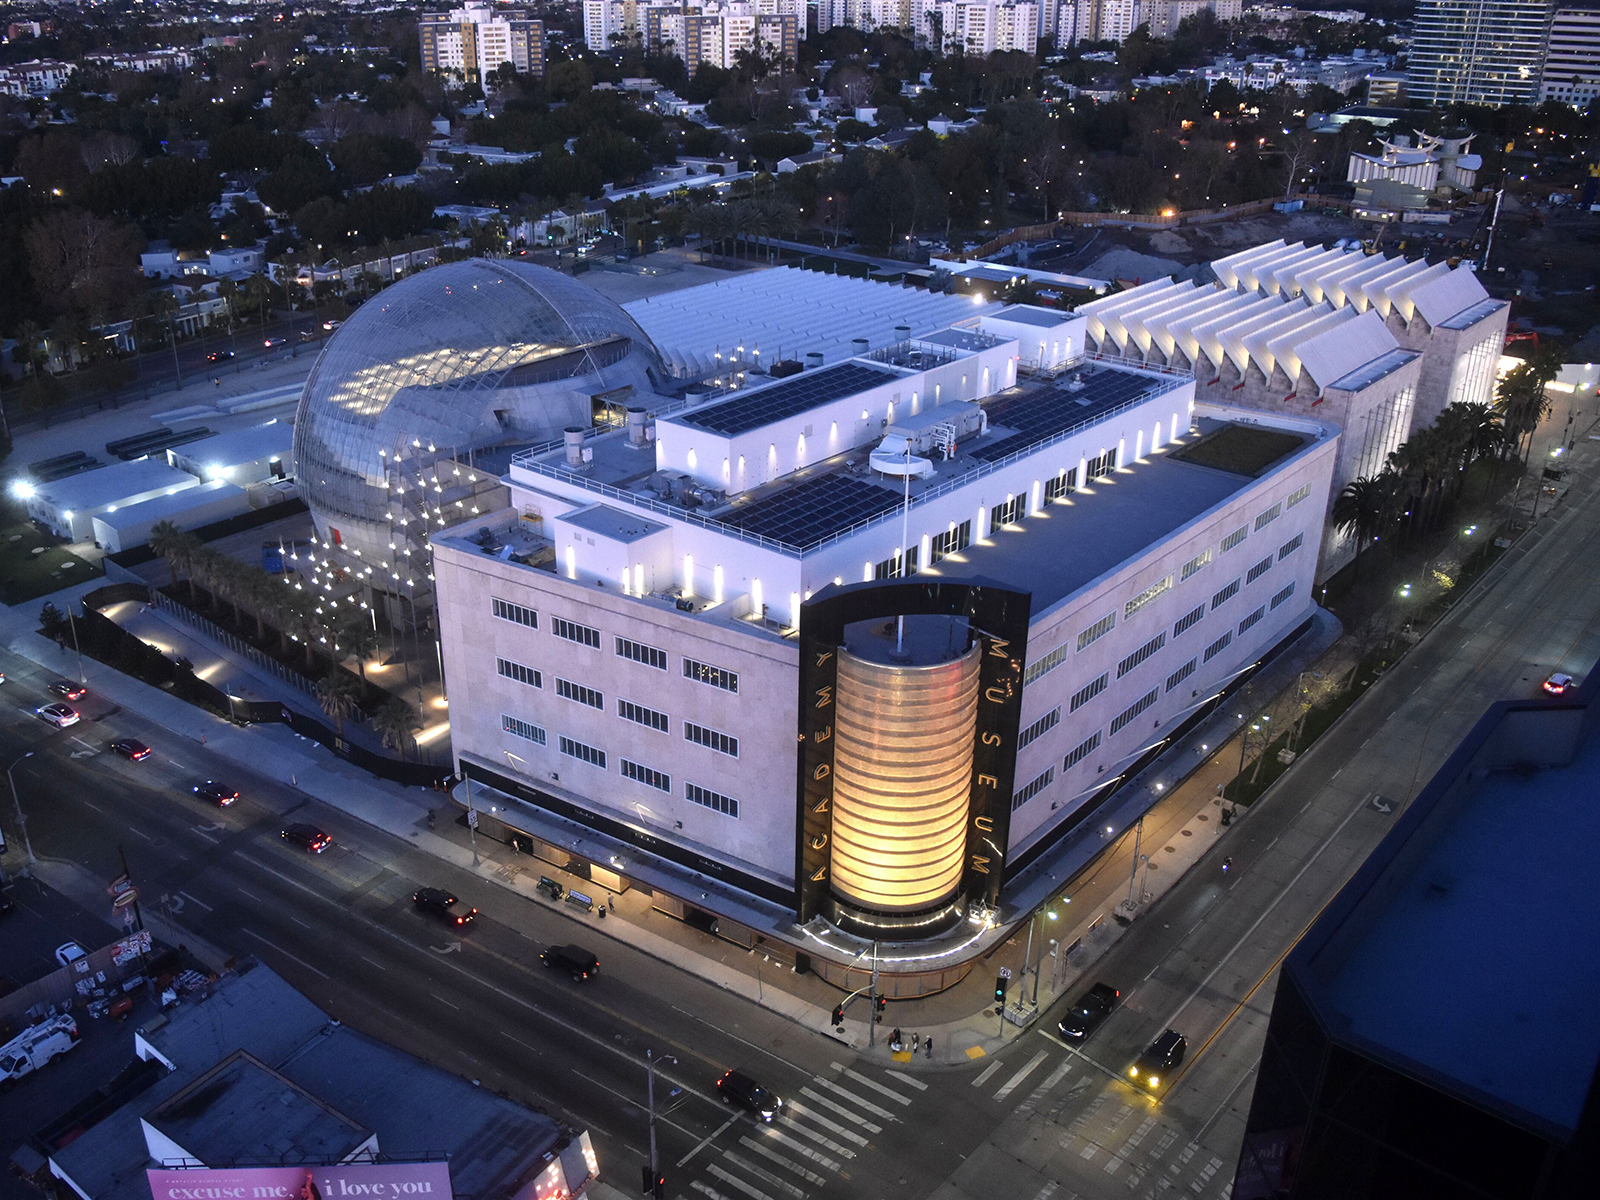 An aerial view of The Academy Museum of Motion Pictures